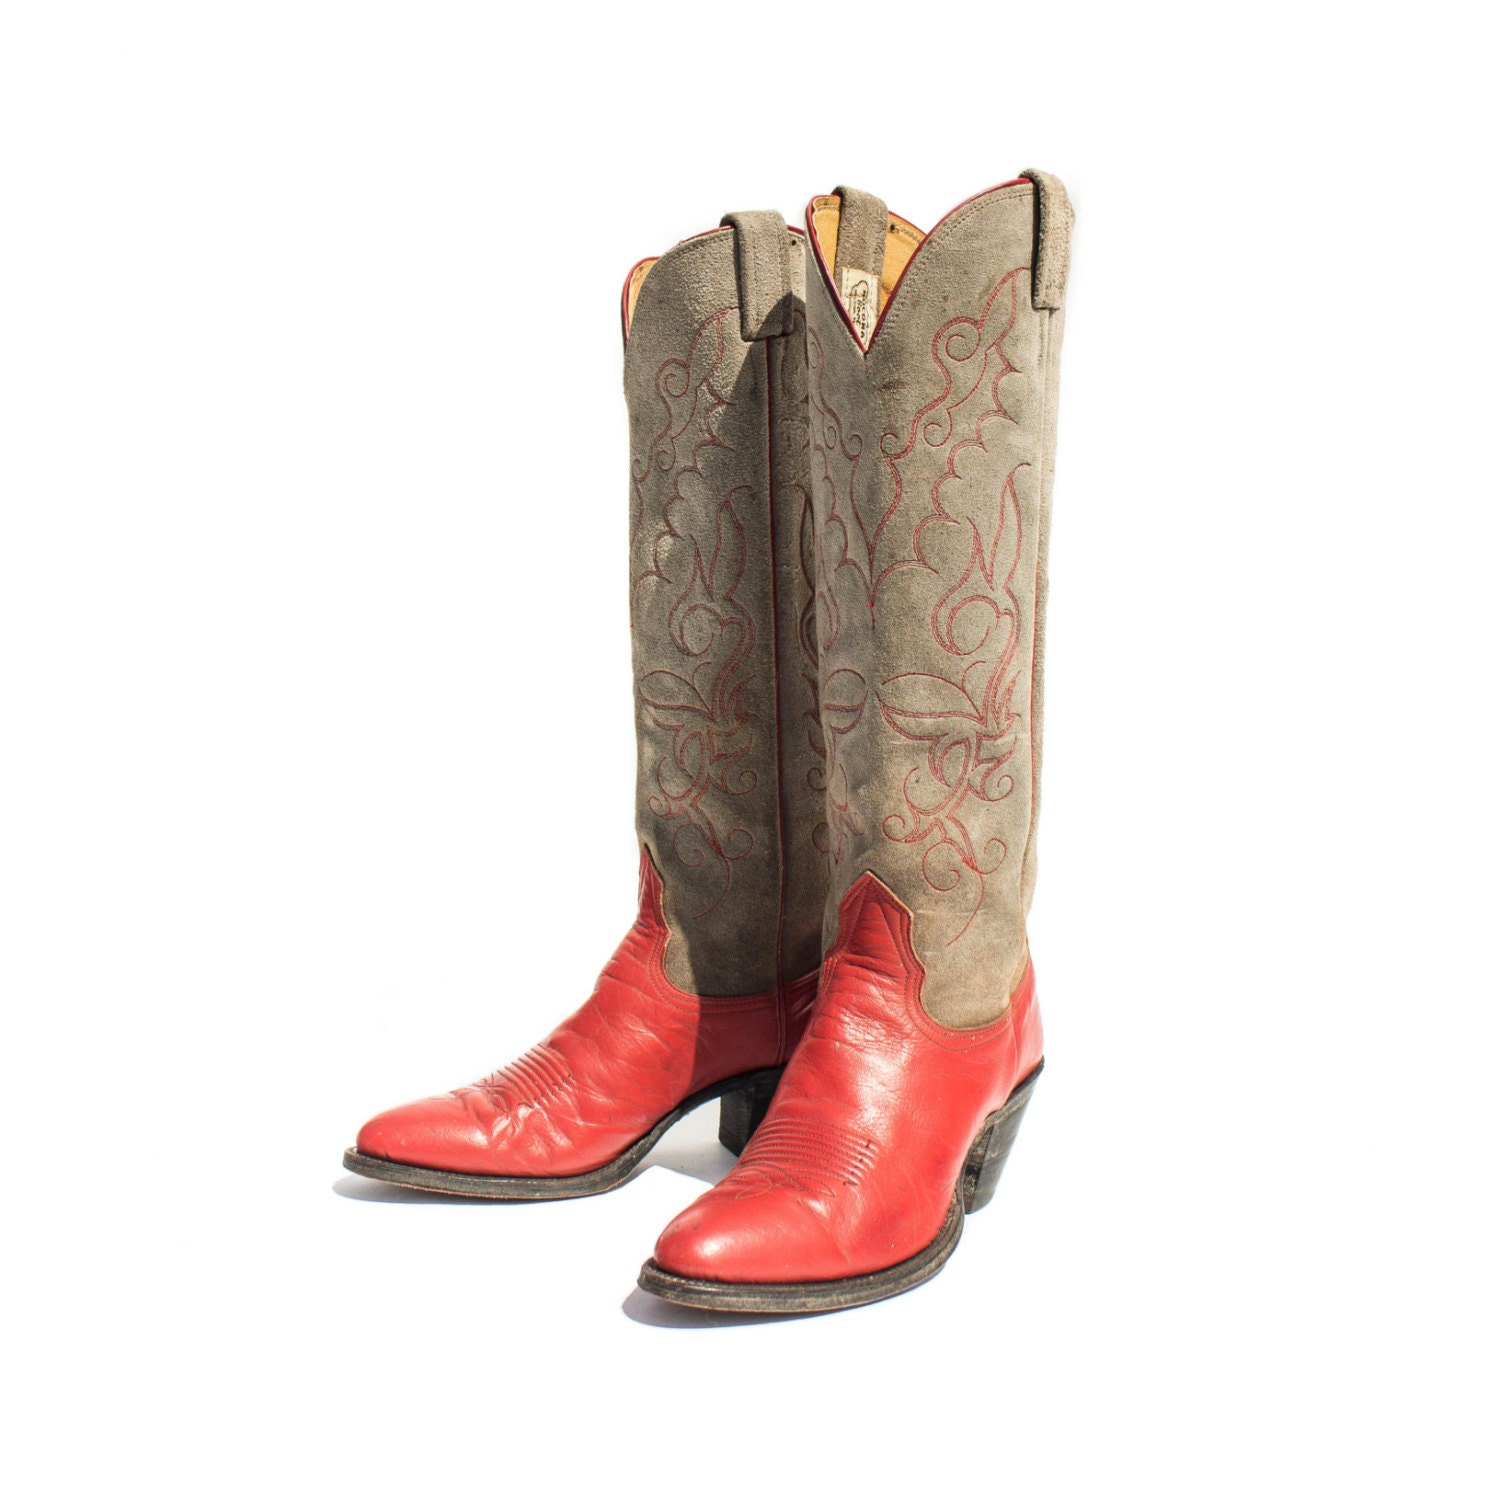 6 c cowboy boots western boots grey suede and